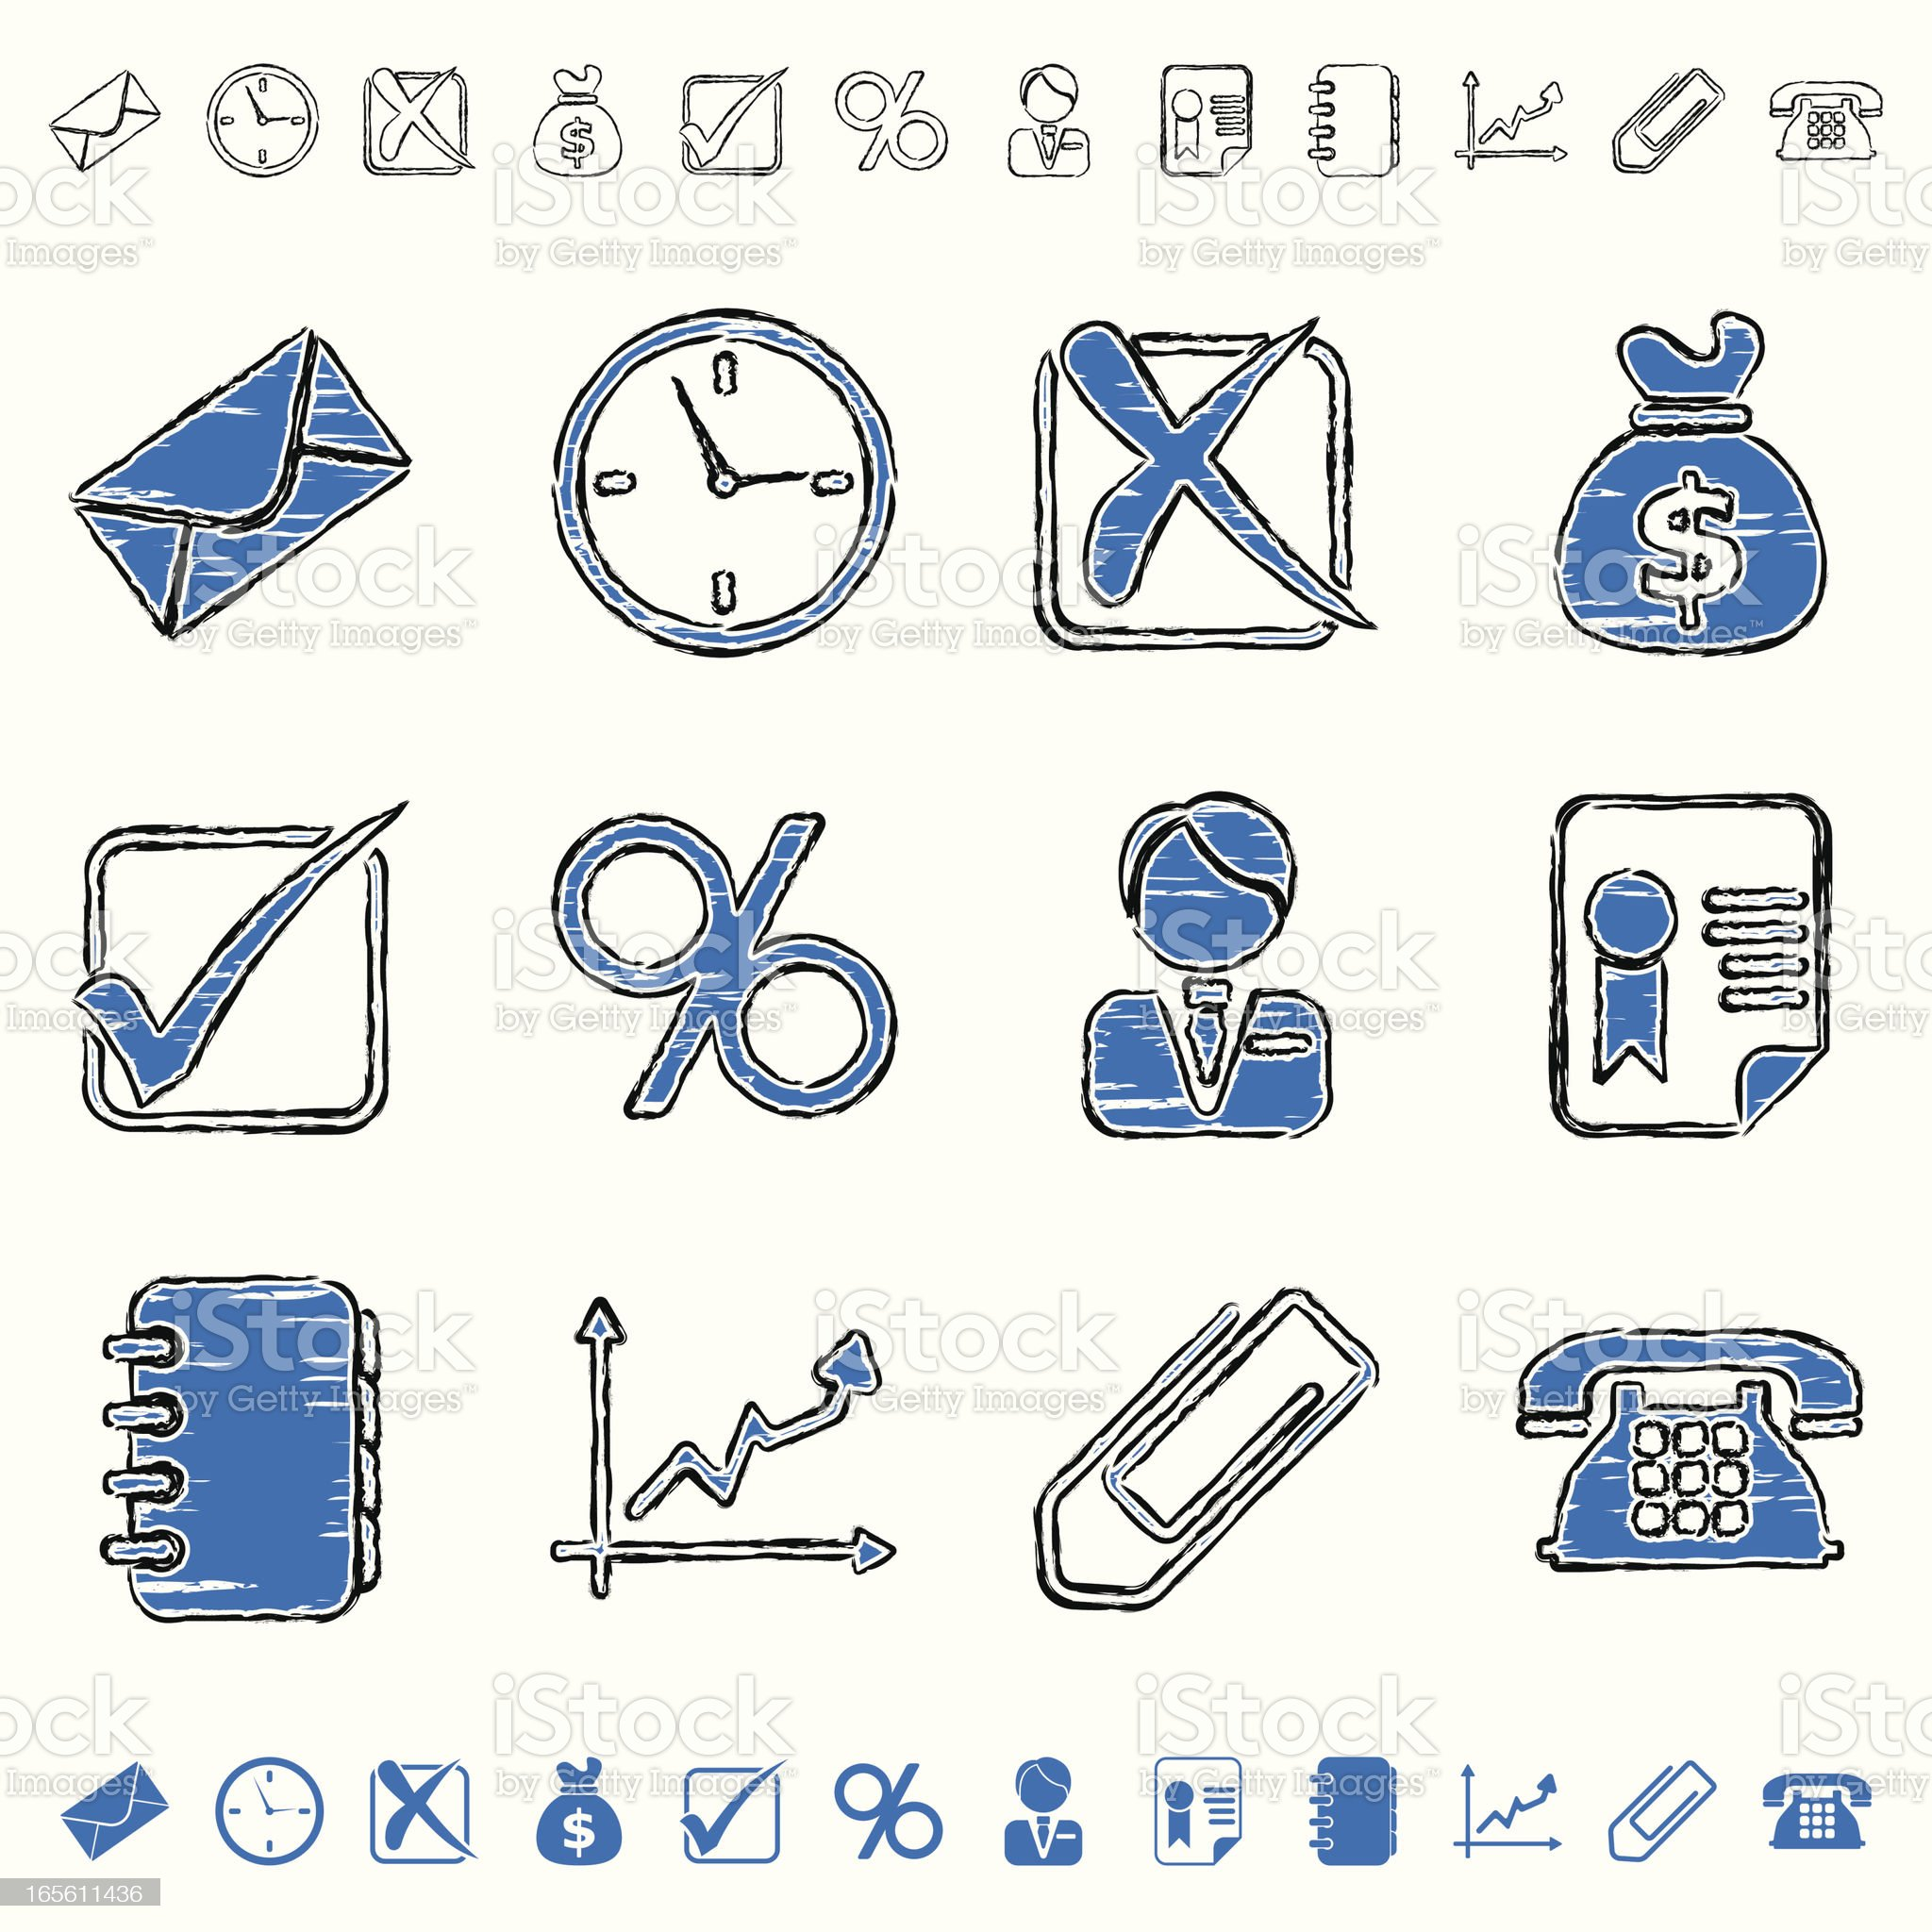 blue grunge icons - business royalty-free stock vector art